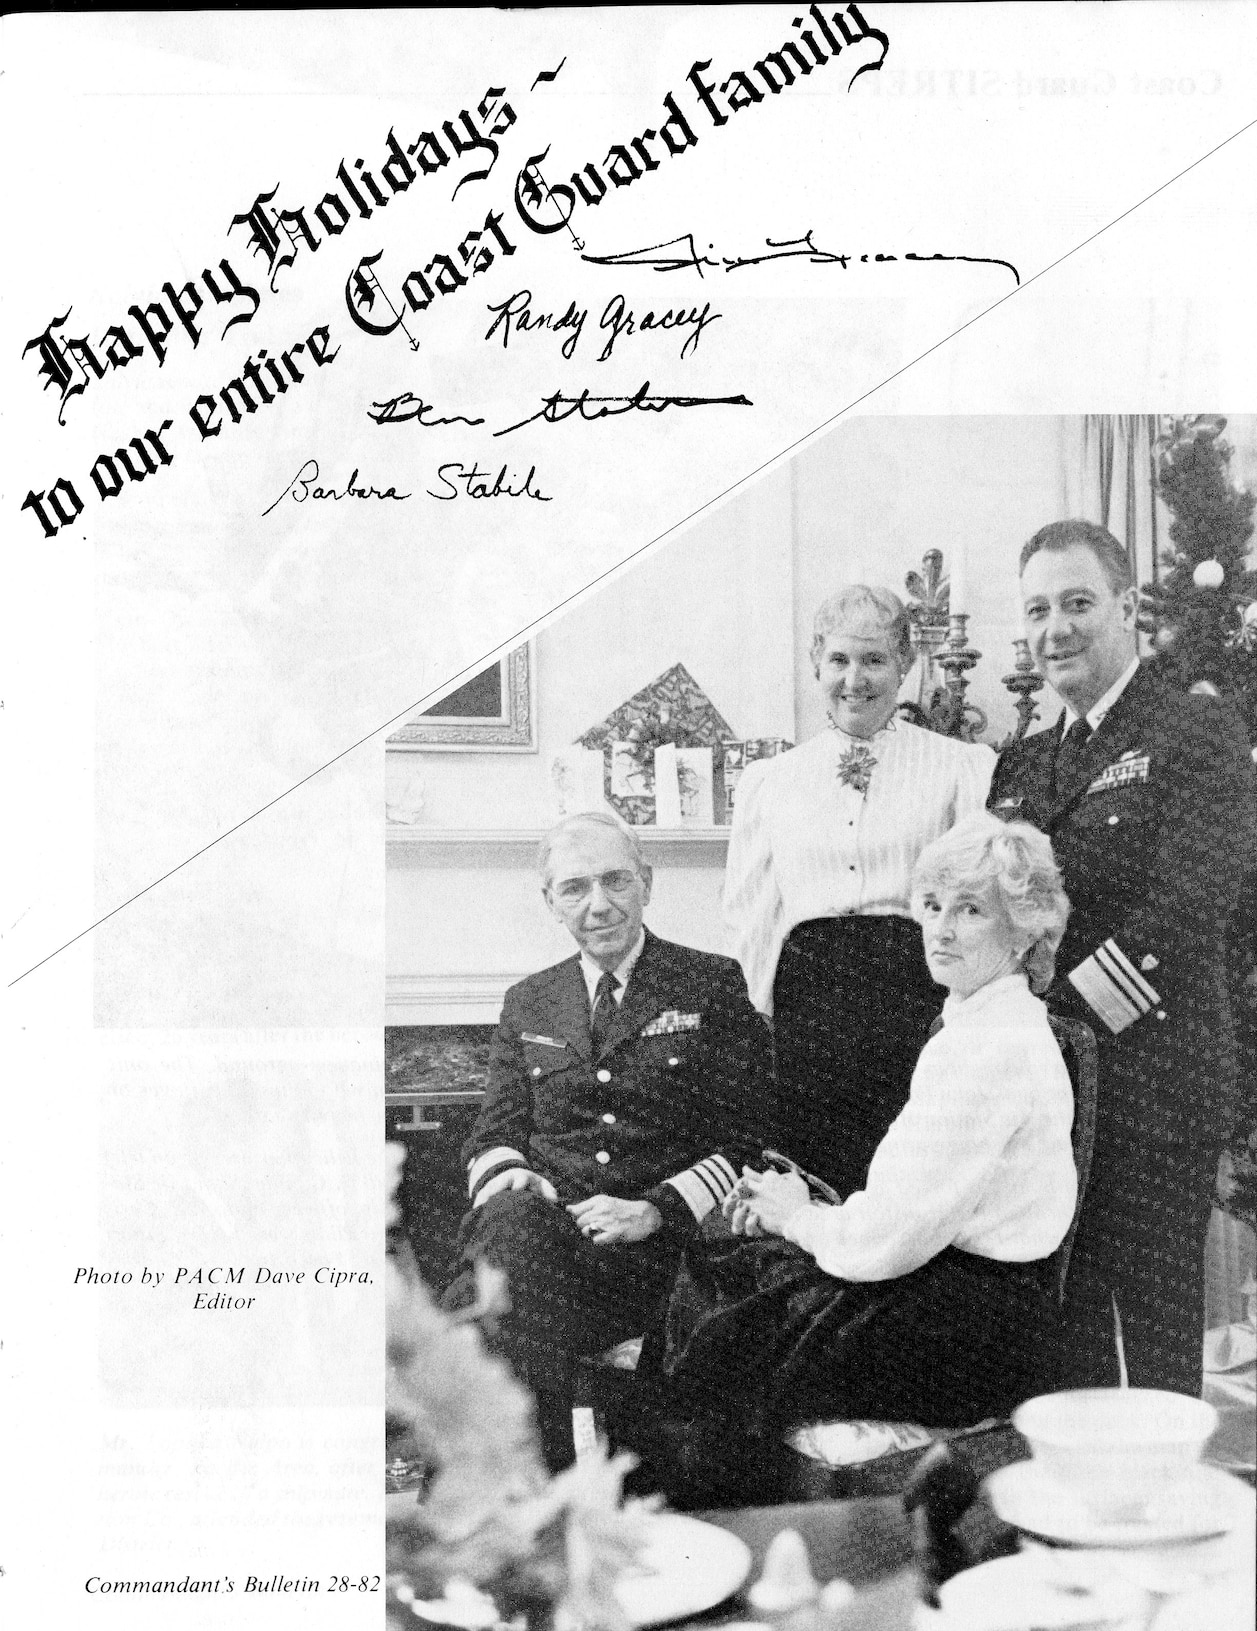 Admiral Gracey's 1982 Christmas Card to the Coast Guard Family posted in the Commandant's Bulletin 28-82.  Photo by PACM Dave Cipra, Editor